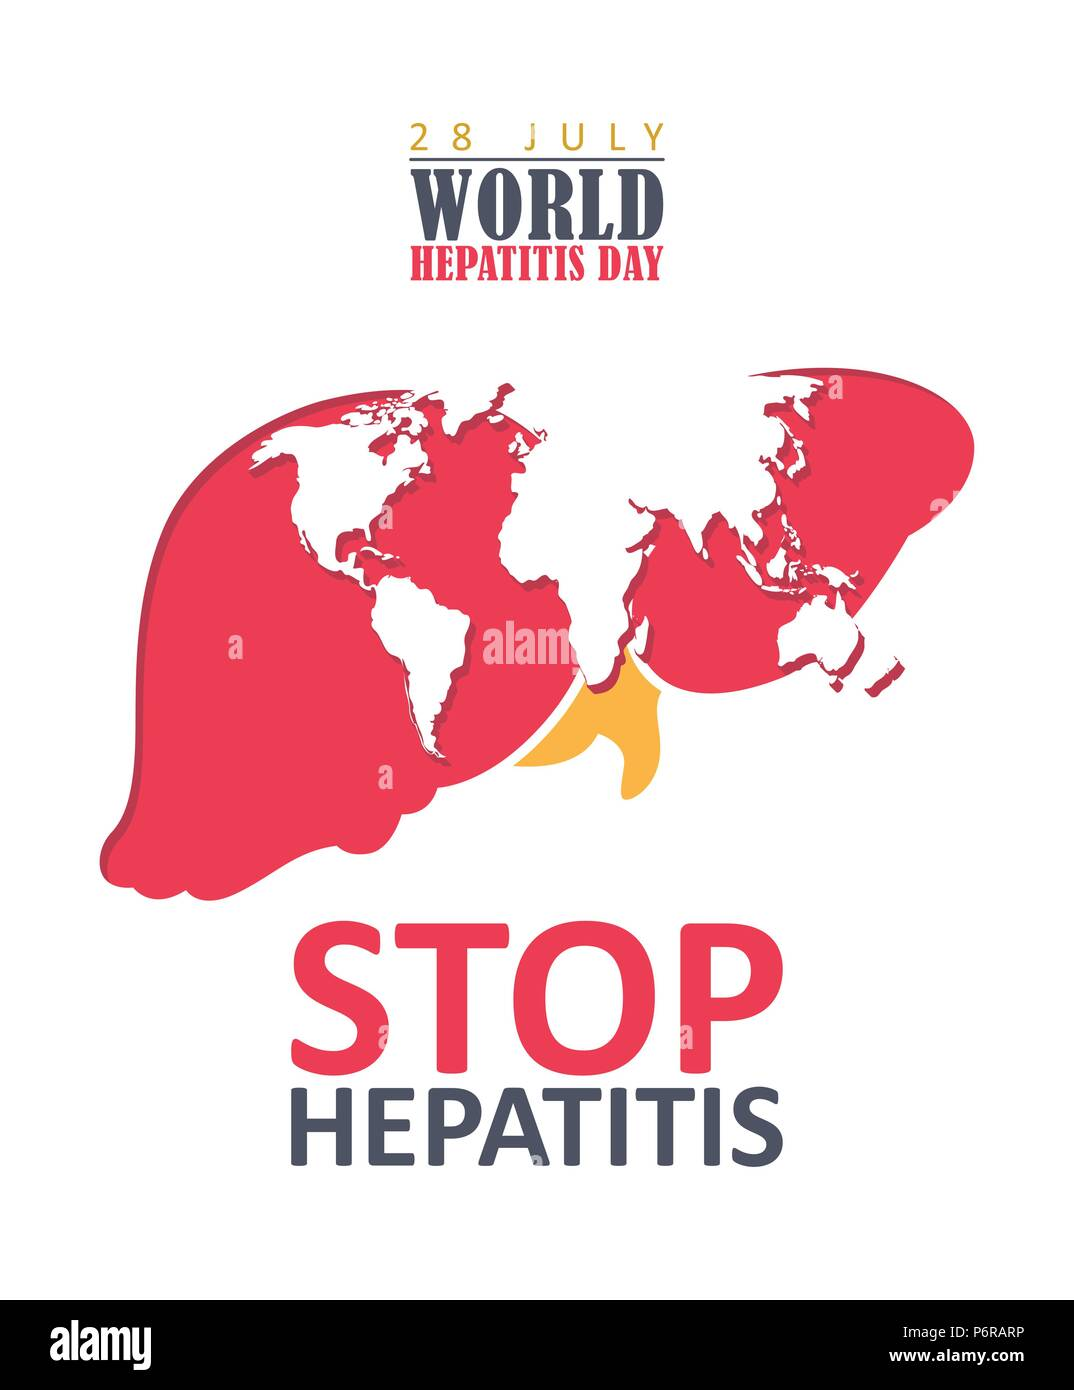 Hepatitis c stock photos hepatitis c stock images page 2 alamy world hepatitis day vector poster in modern flat design on white background 28 july thecheapjerseys Gallery